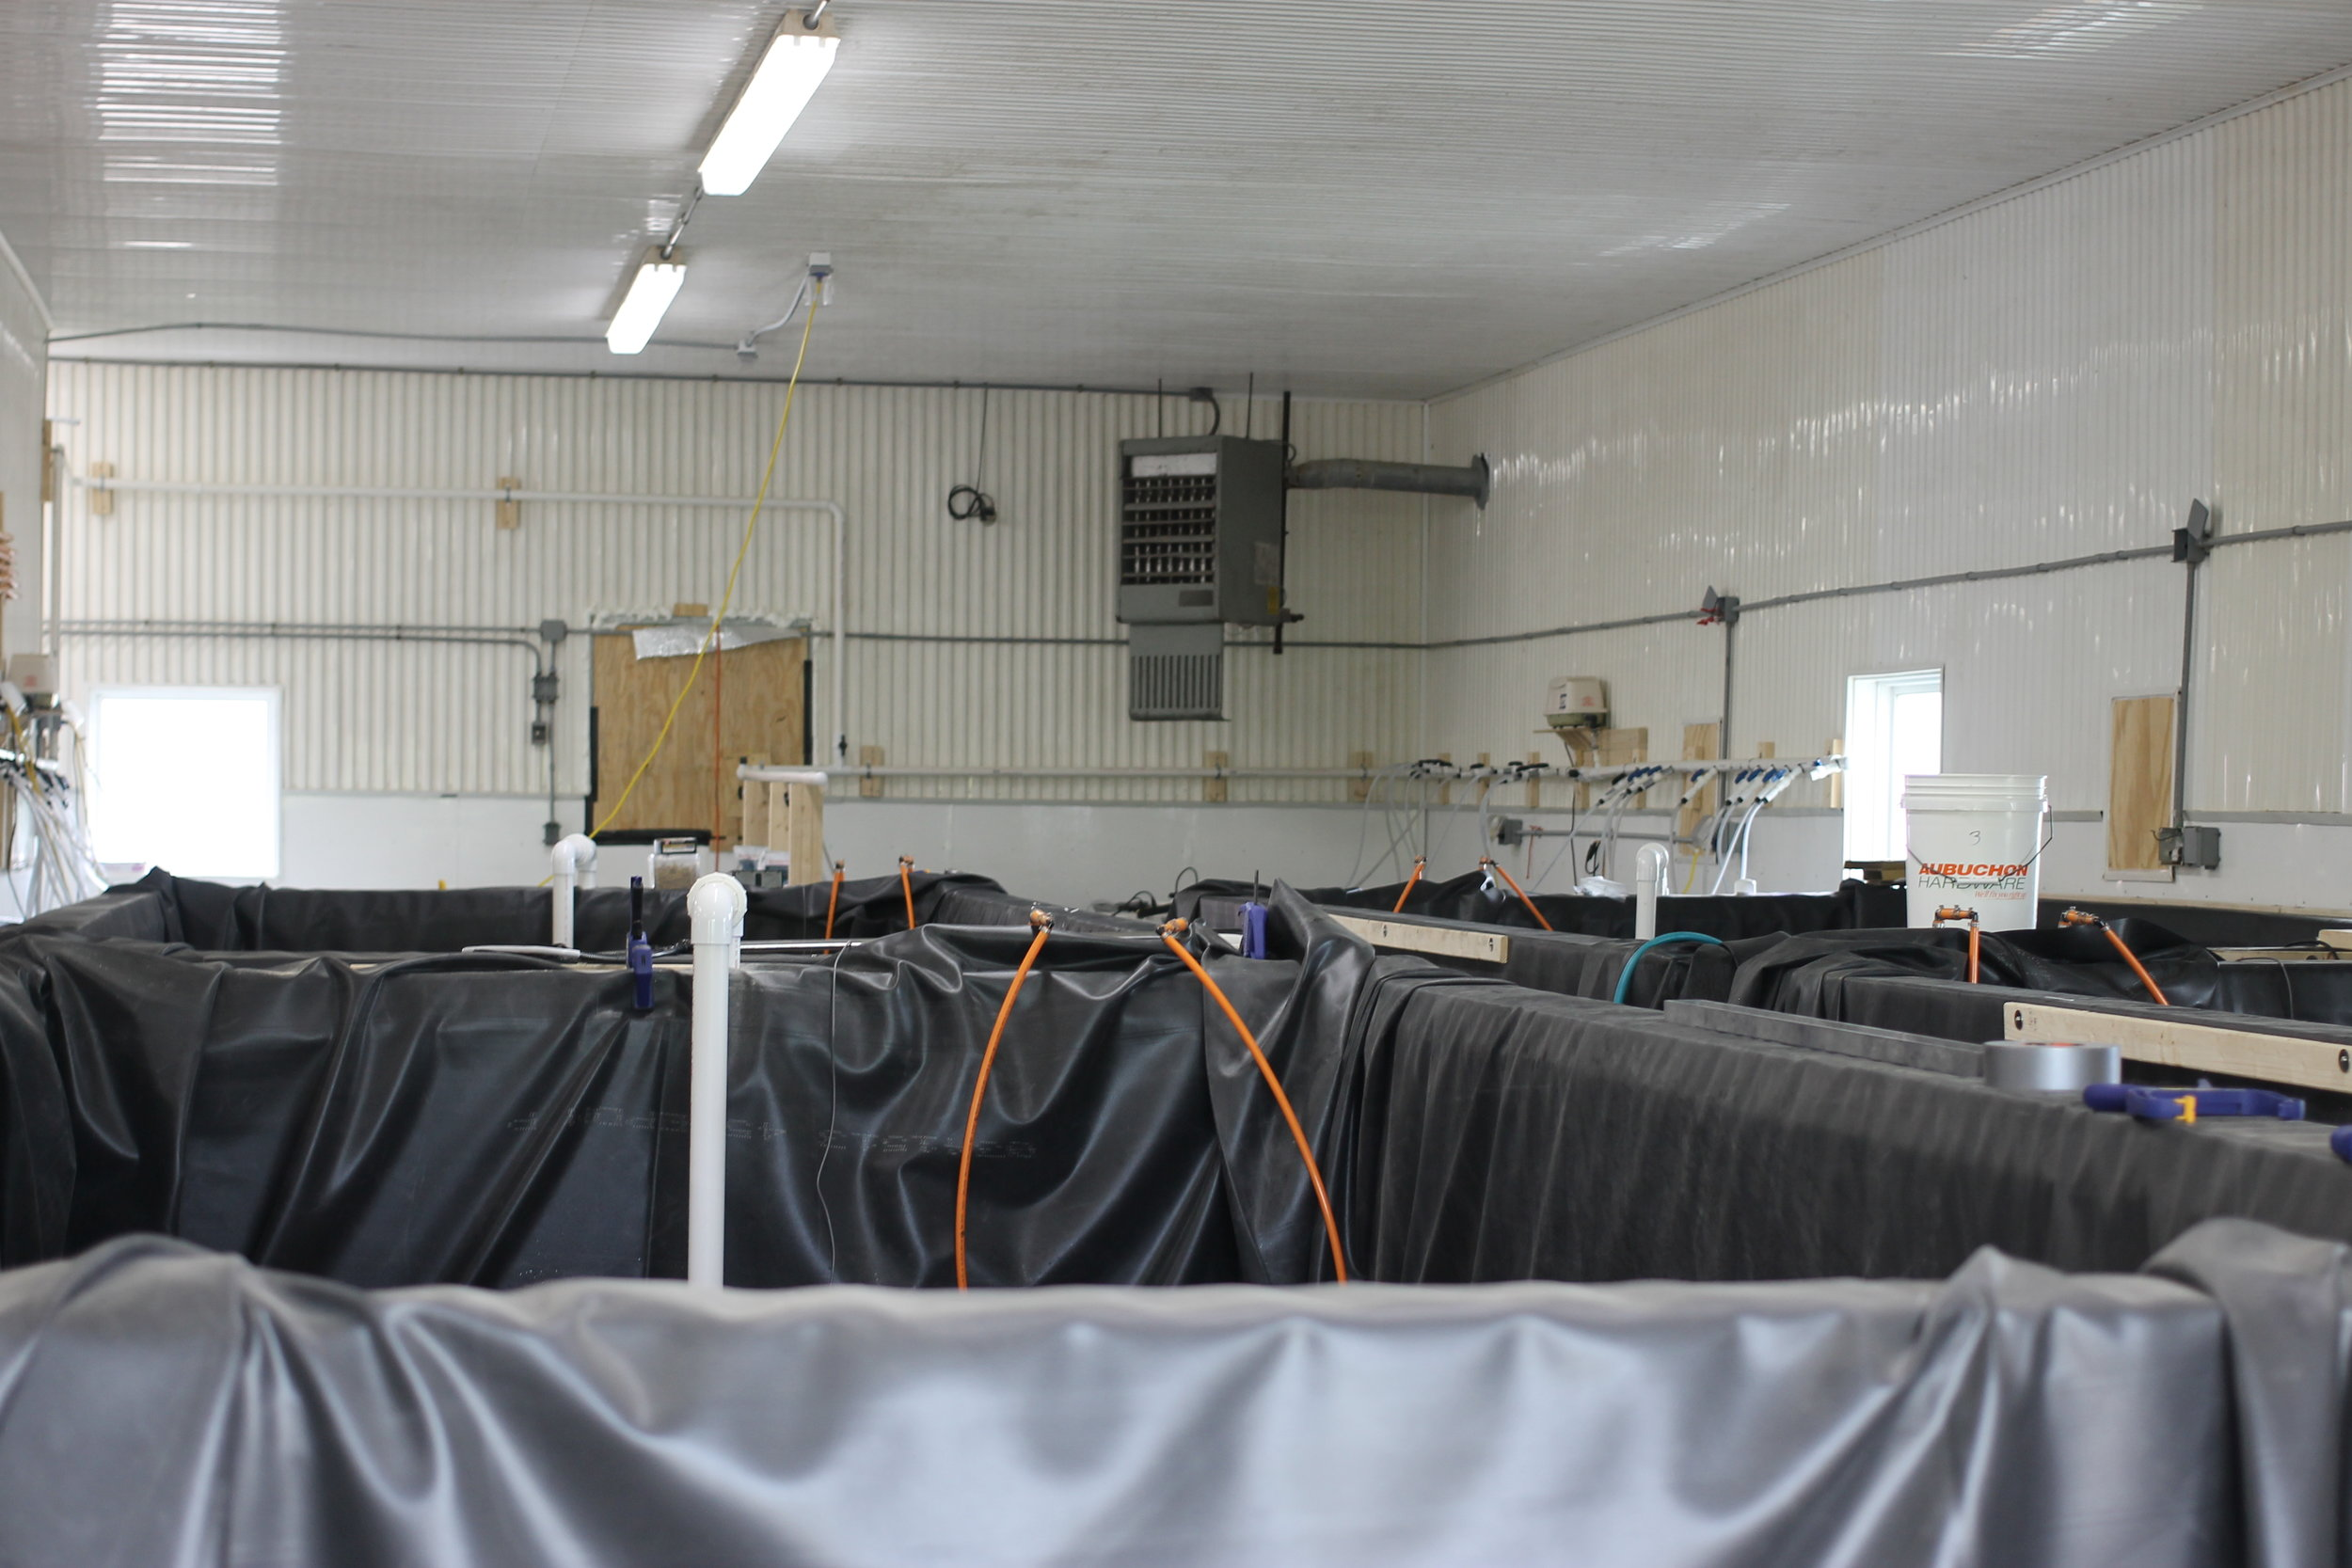 The tanks at Sweet Sound Aquaculture that will be holding fresh shrimp to grow and sell to restaurants and Vermonters.